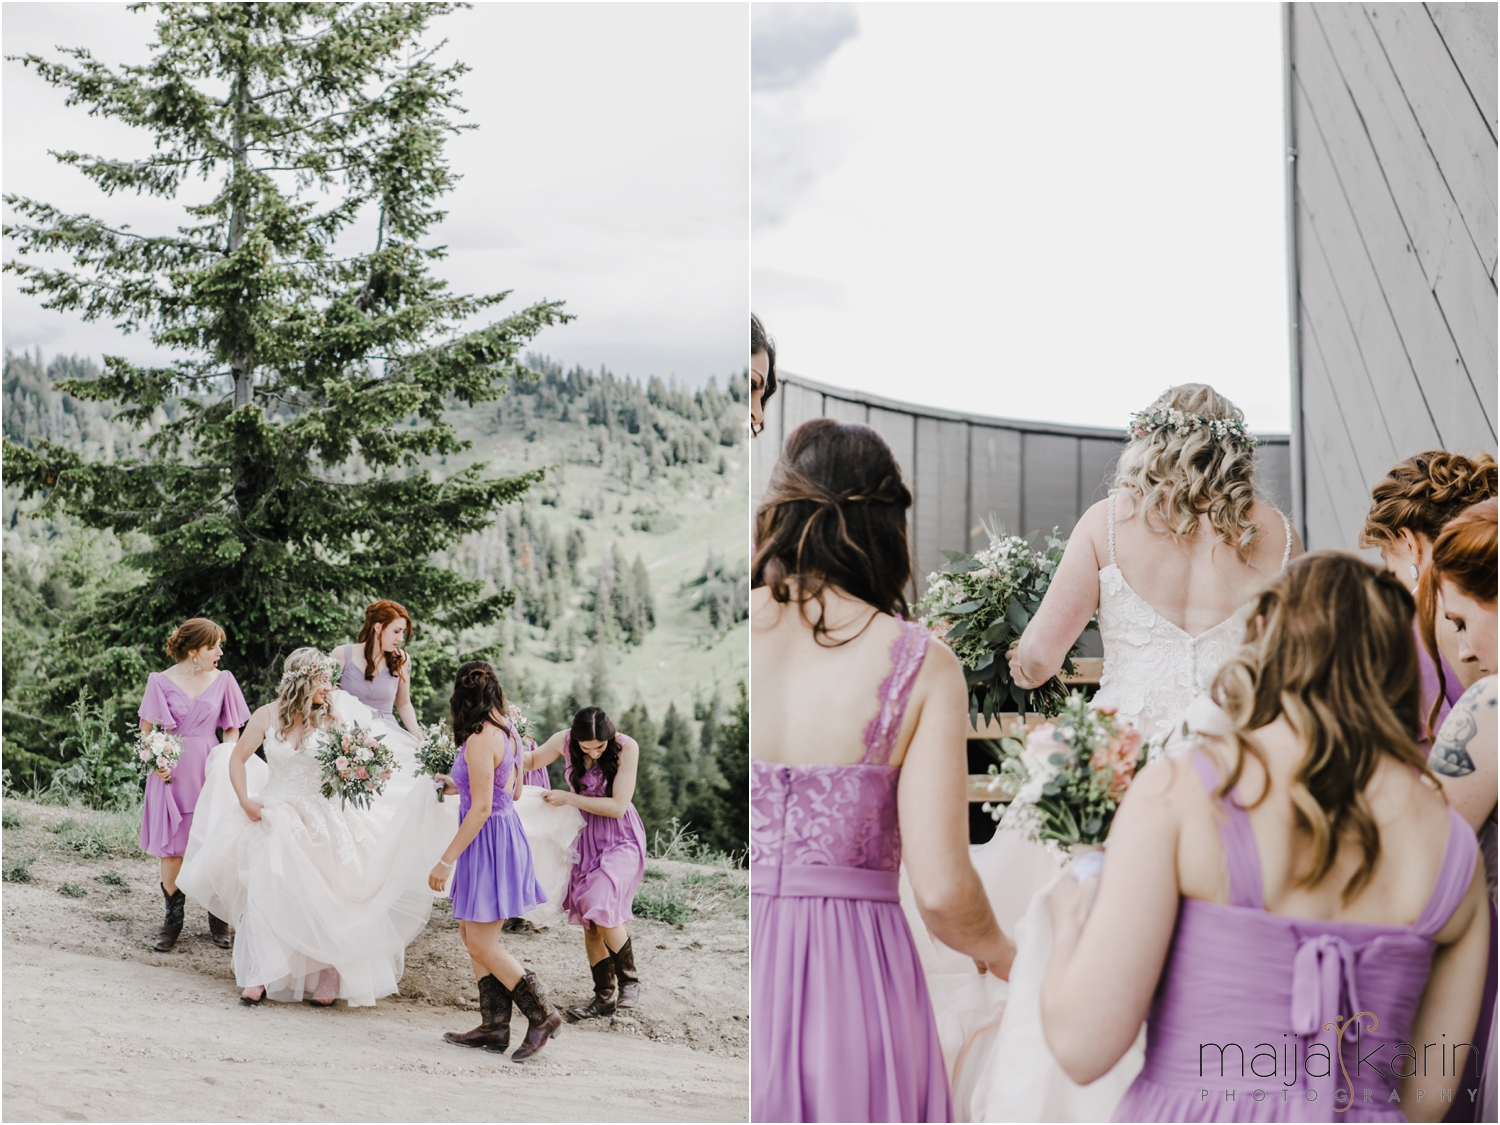 Bogus-Basin-Wedding-Maija-Karin-Photography_0031.jpg